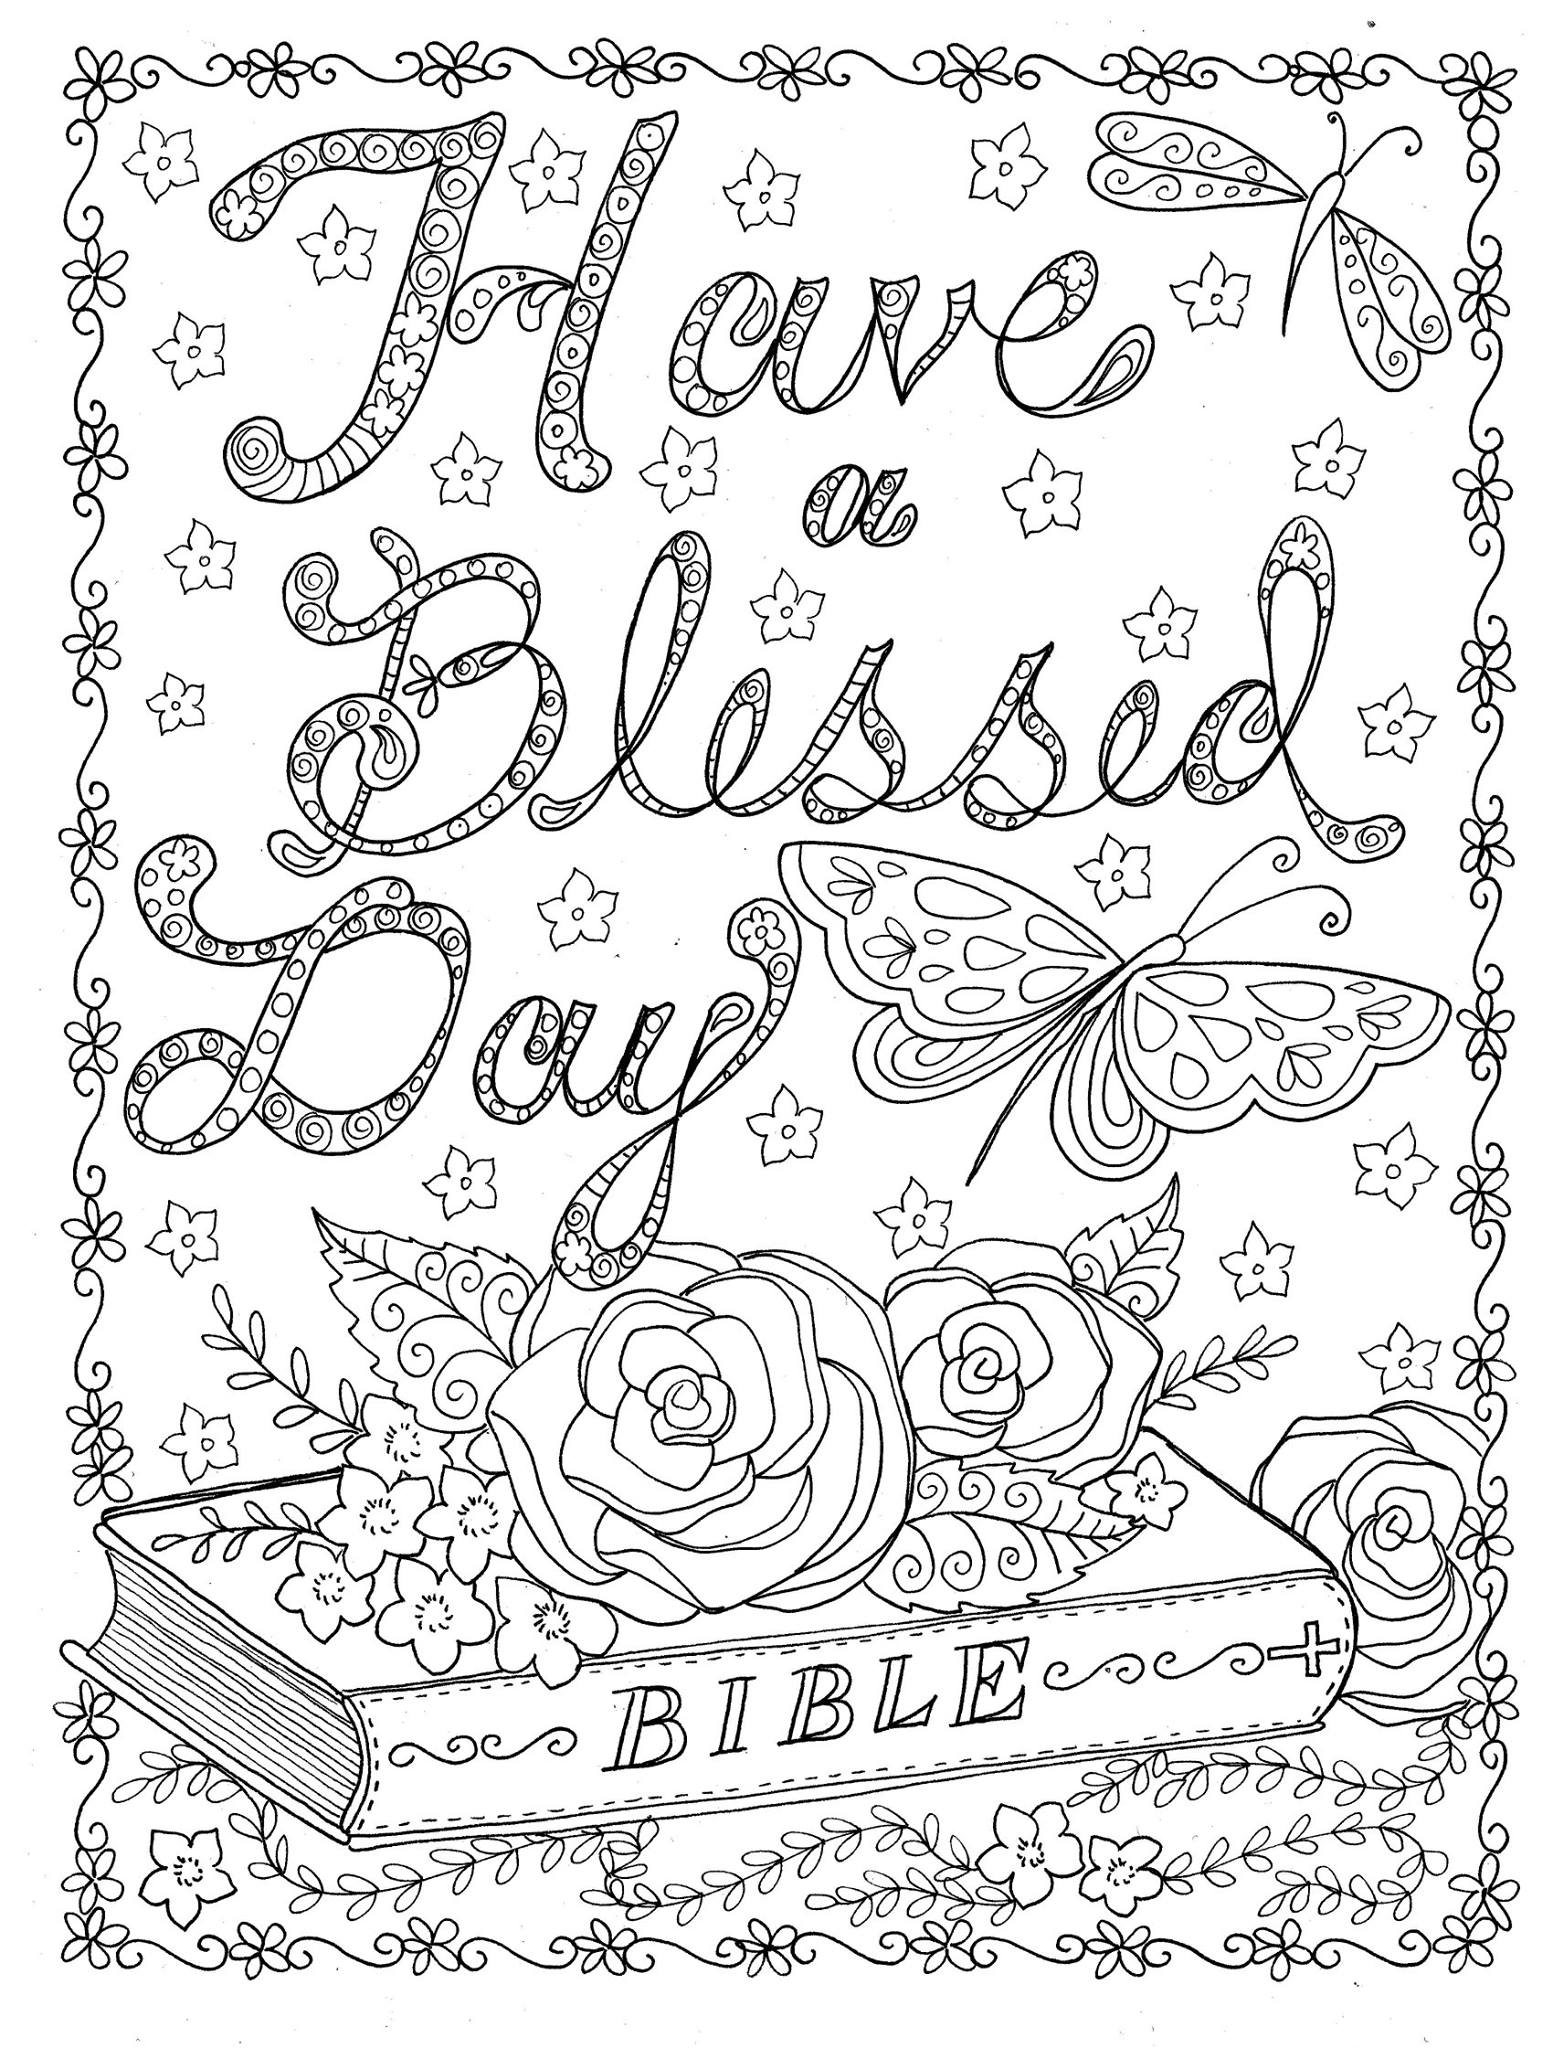 complicated coloring pages printable very difficult coloring pages for adults at getcolorings complicated coloring pages printable